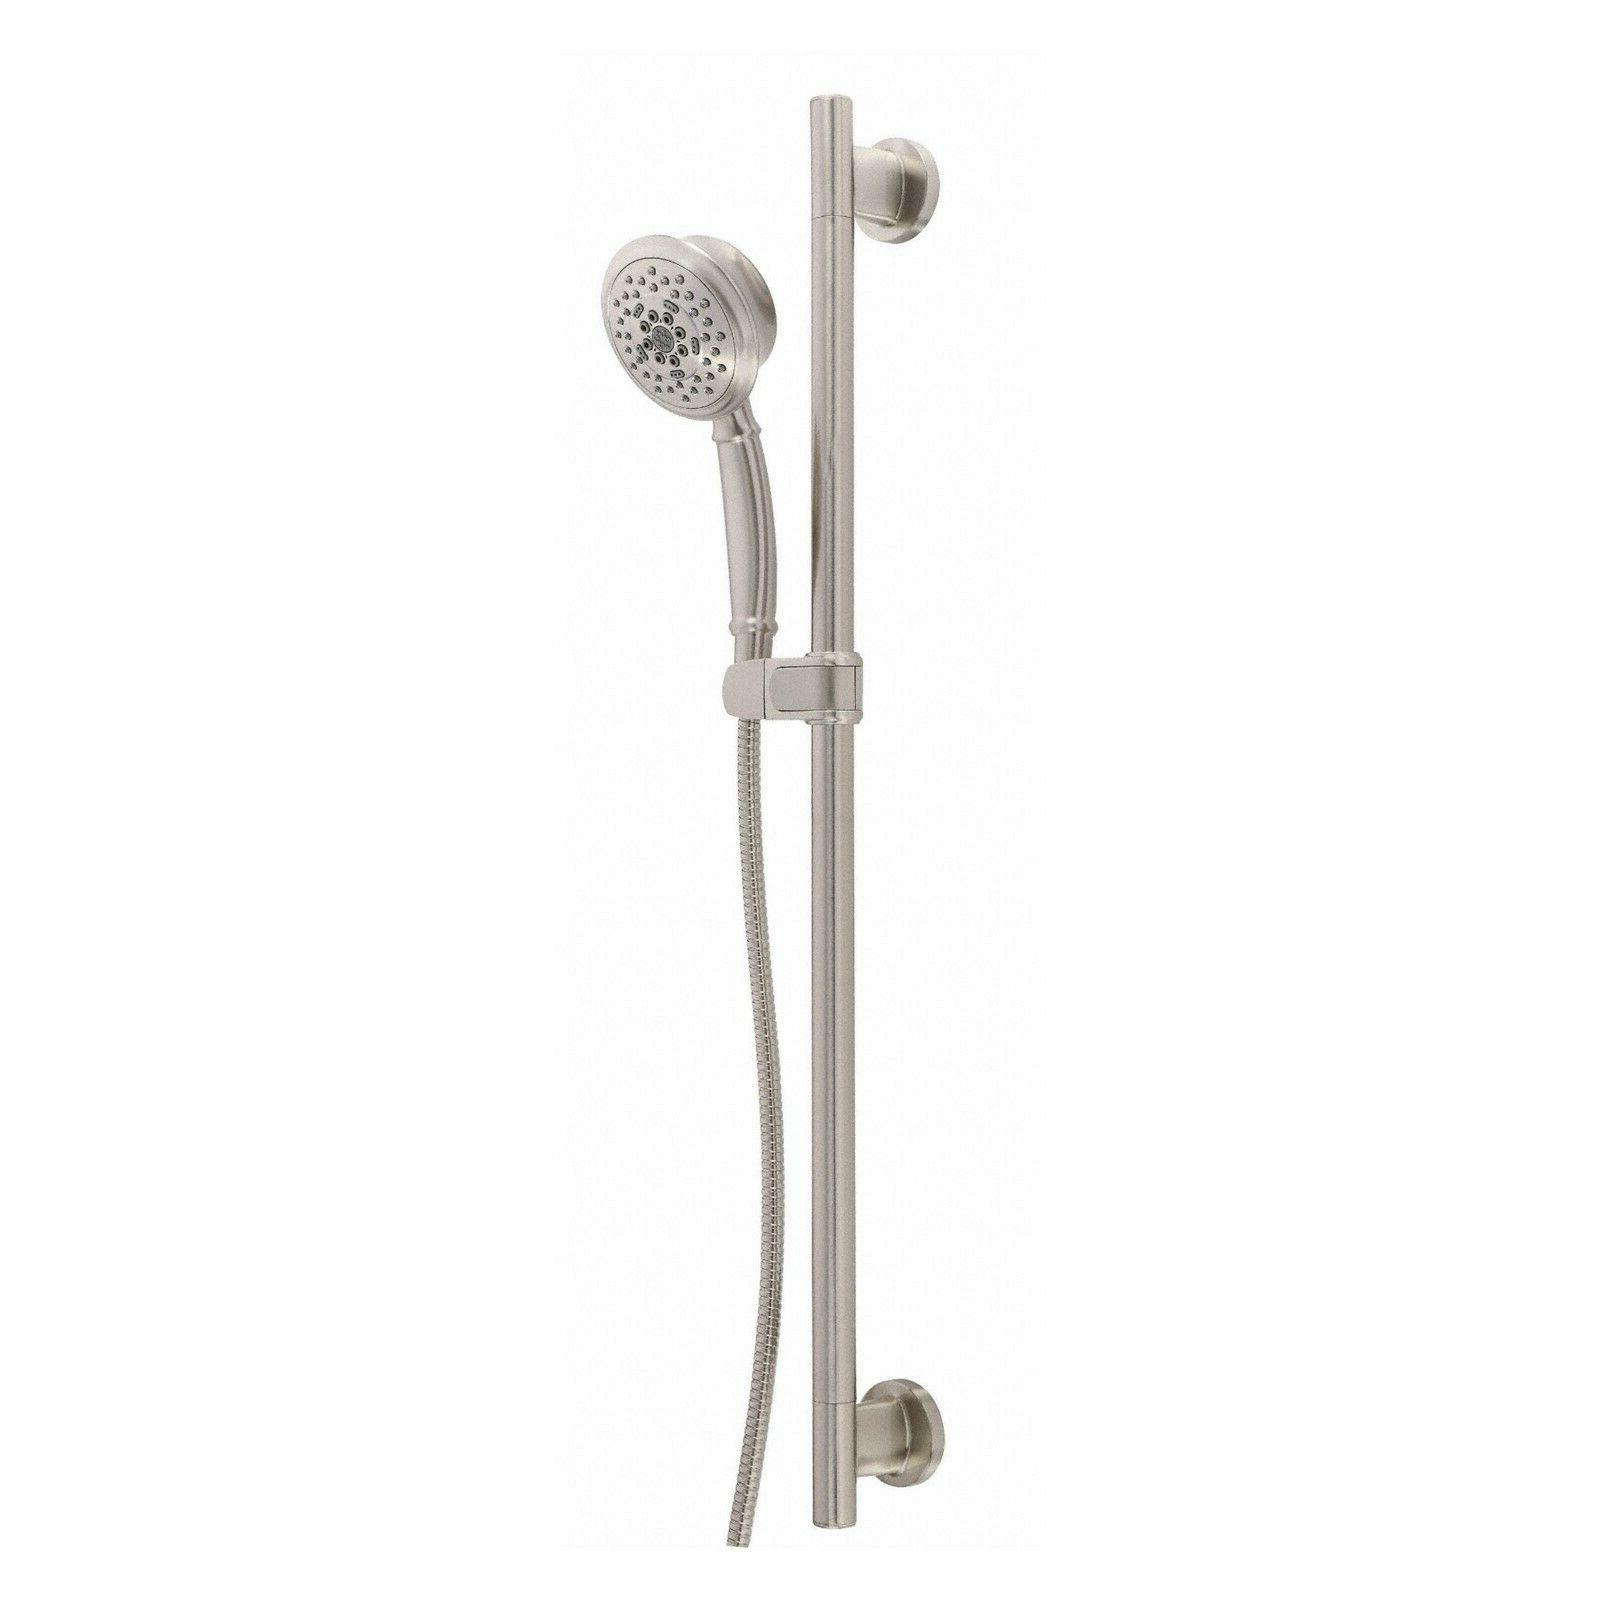 Danze Versa Slide Bar and Shower Head